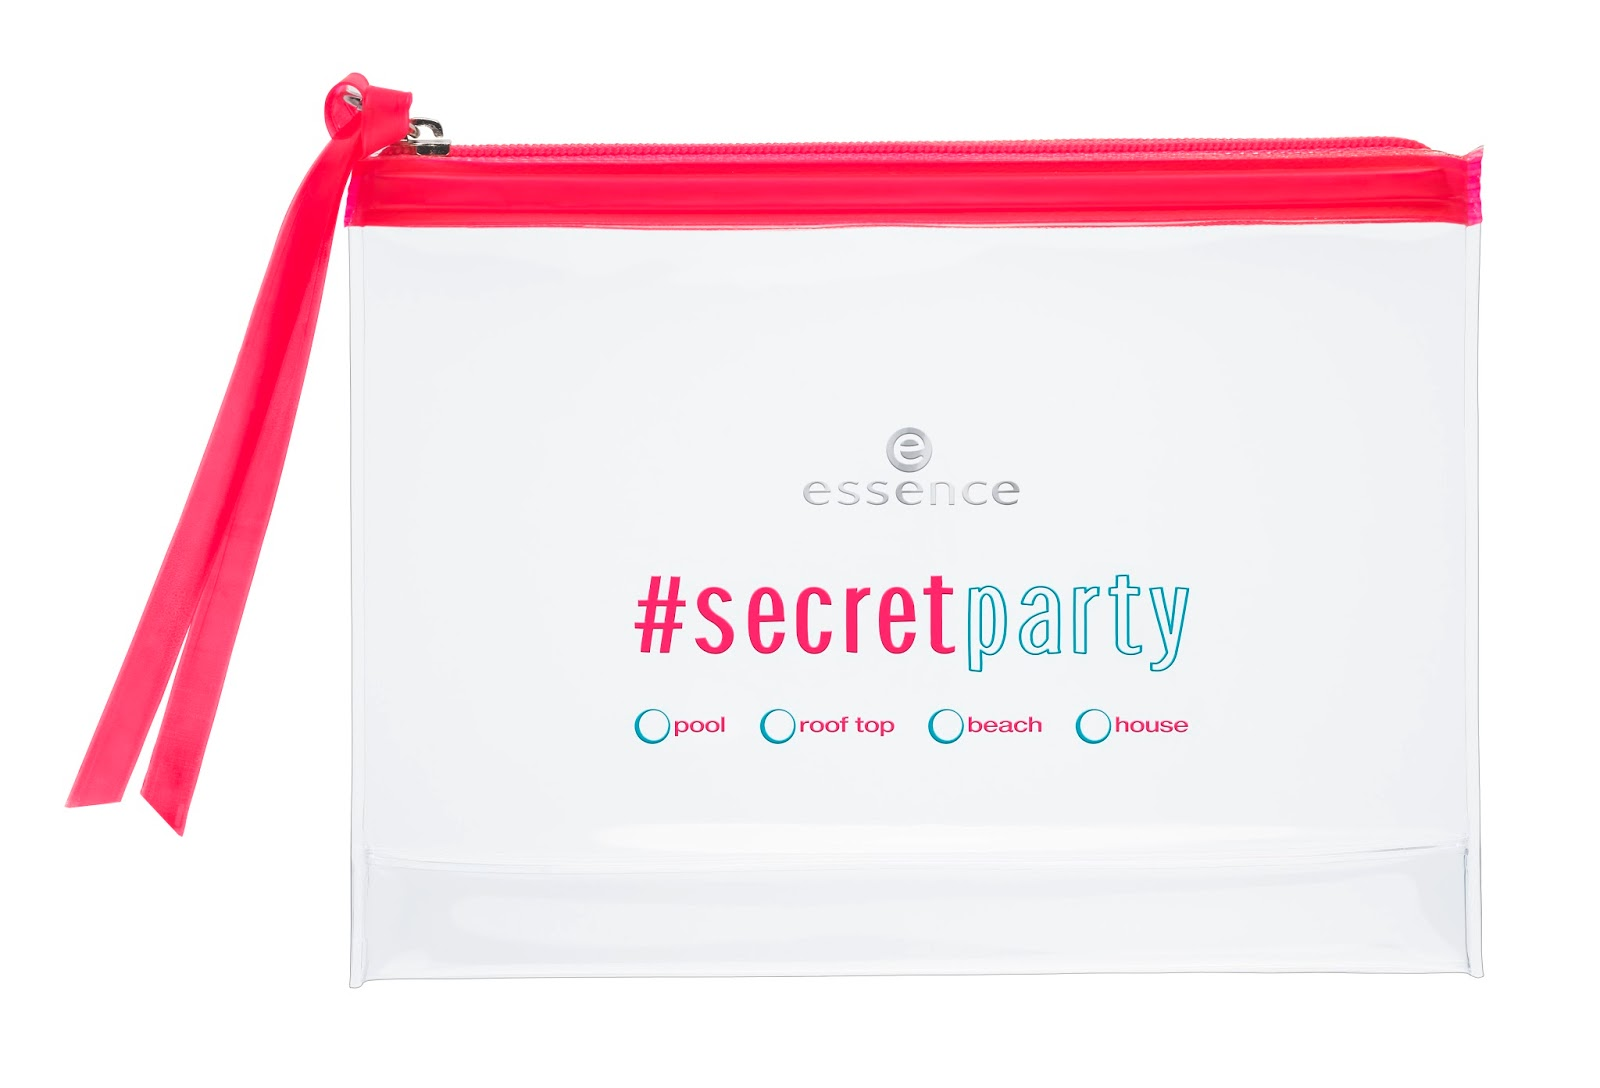 essence-secret-party